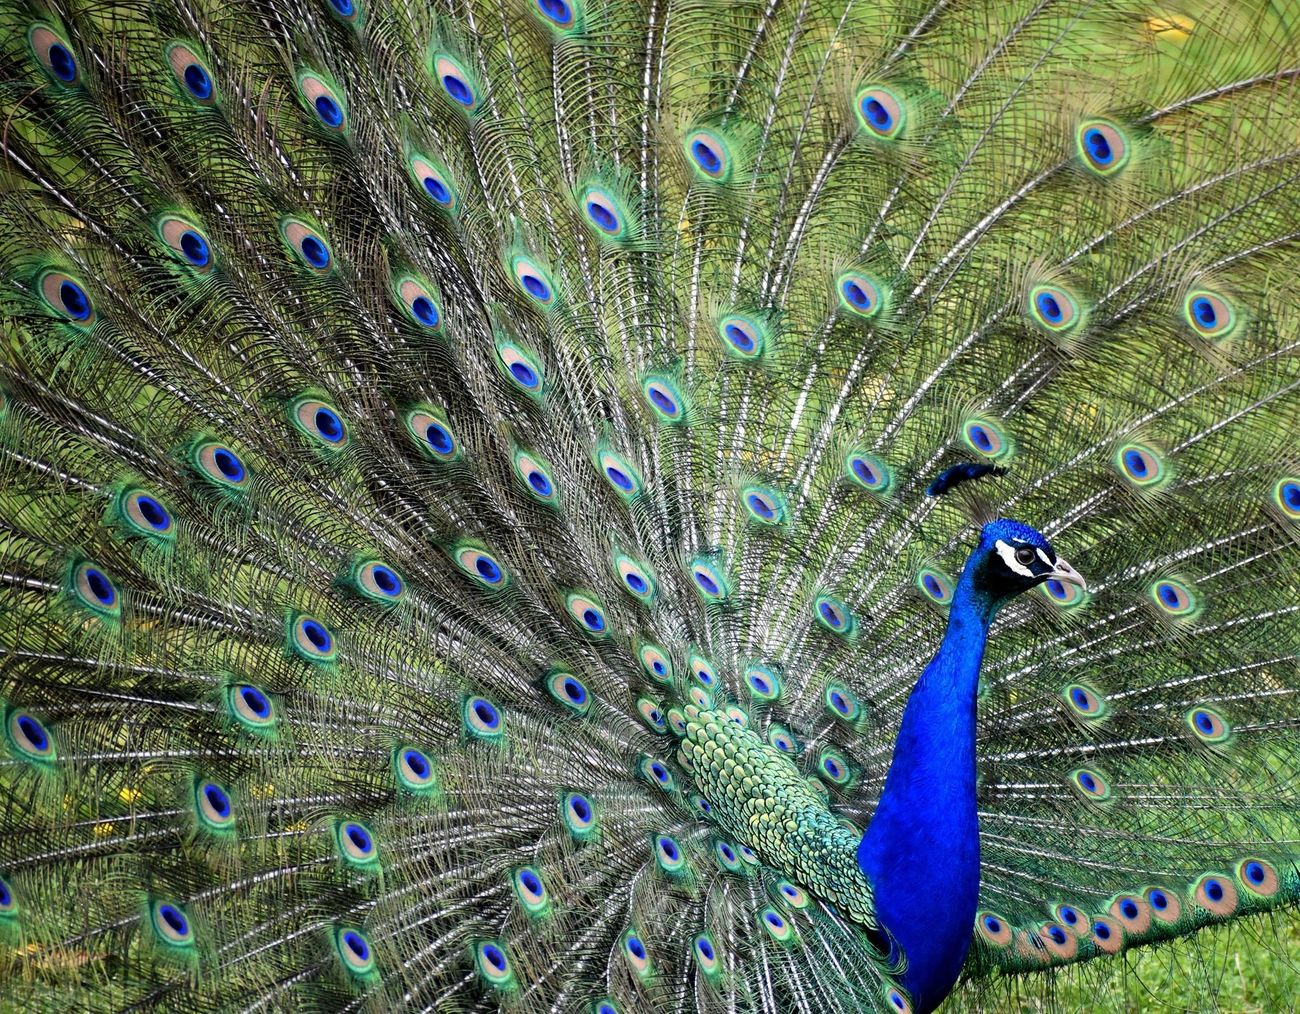 These photos are from a trip to the Botanical Gardens and the Zoo. The peacock was very eager to show off his gorgeous tail feathers.